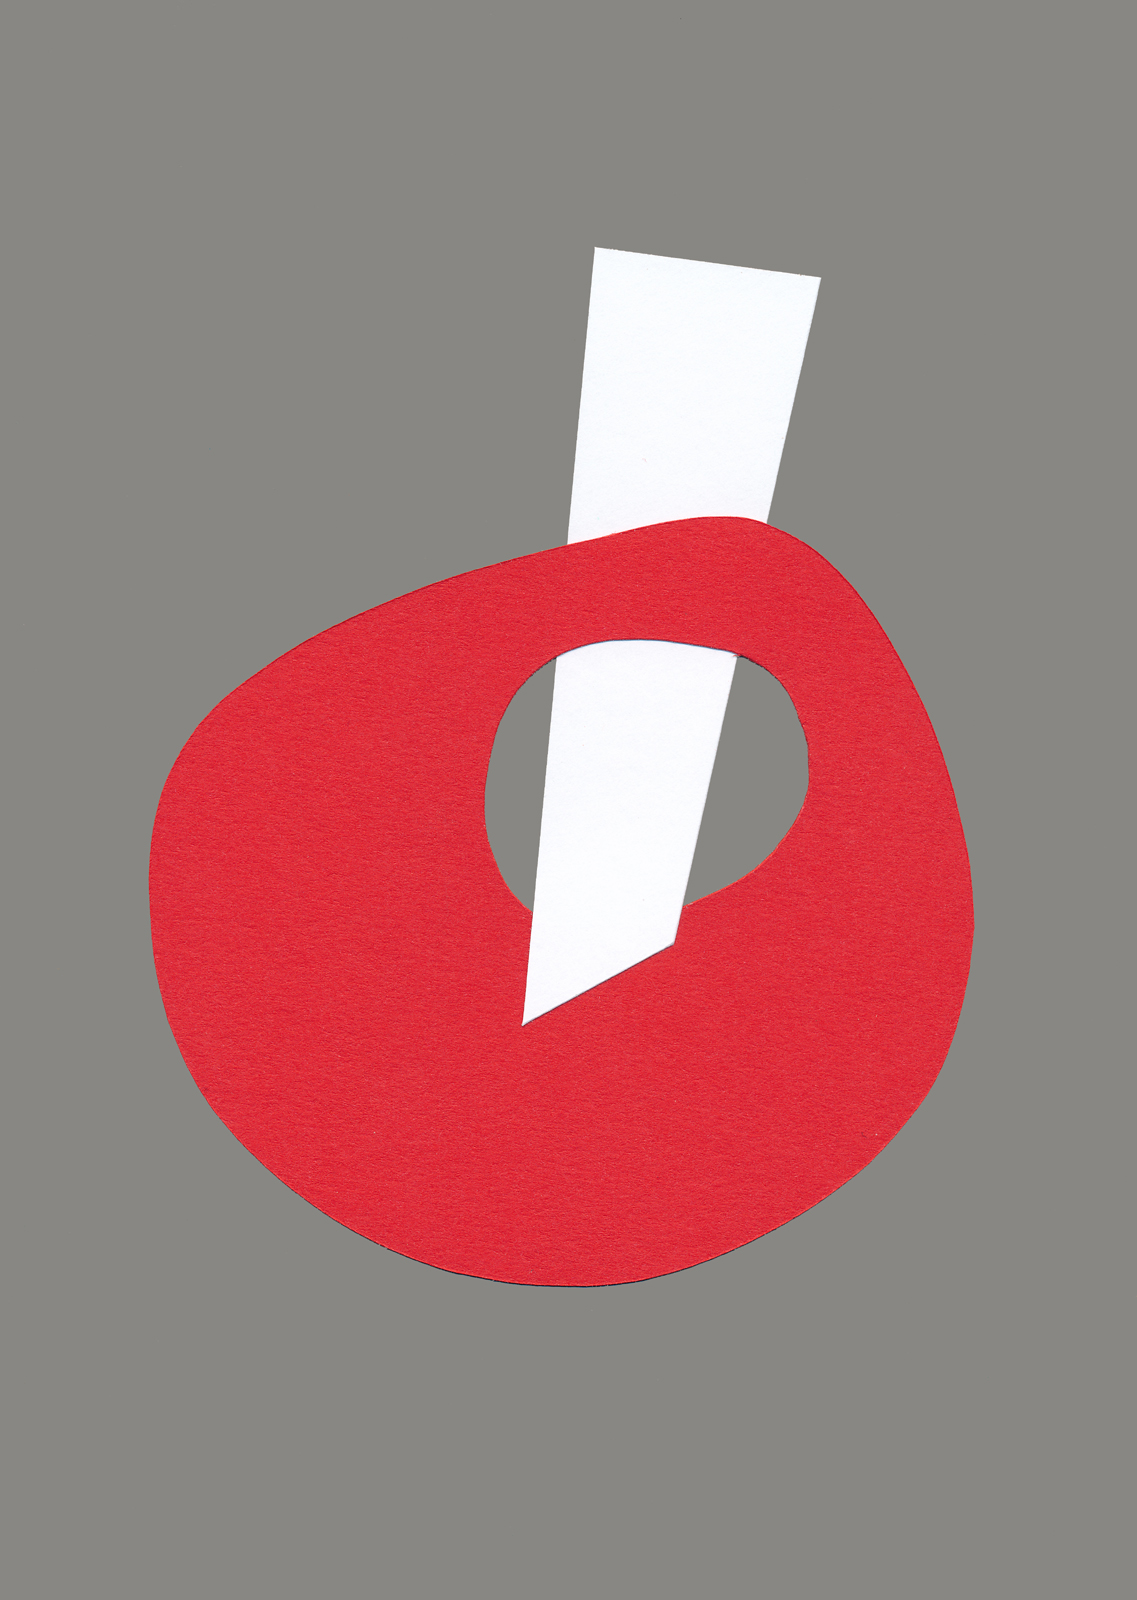 Interjection, A5 paper collage, Mike Tedder